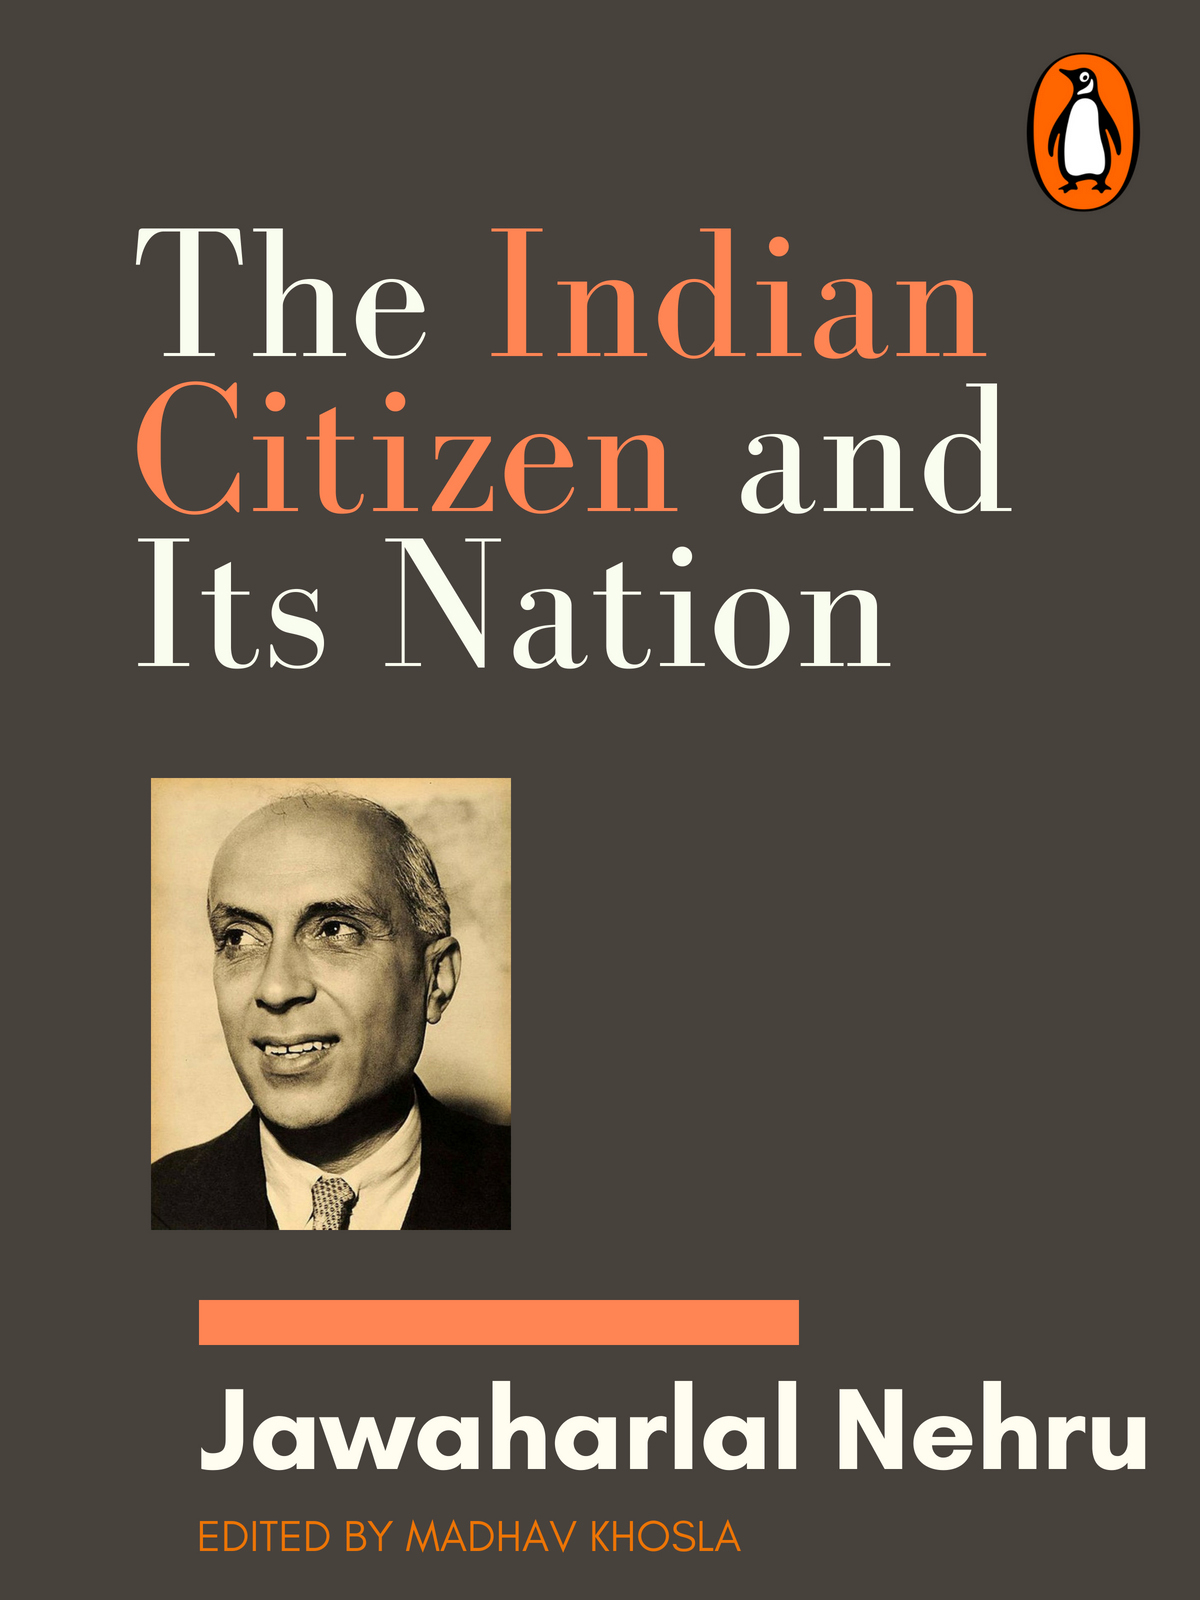 The Indian Citizen and Its Nation